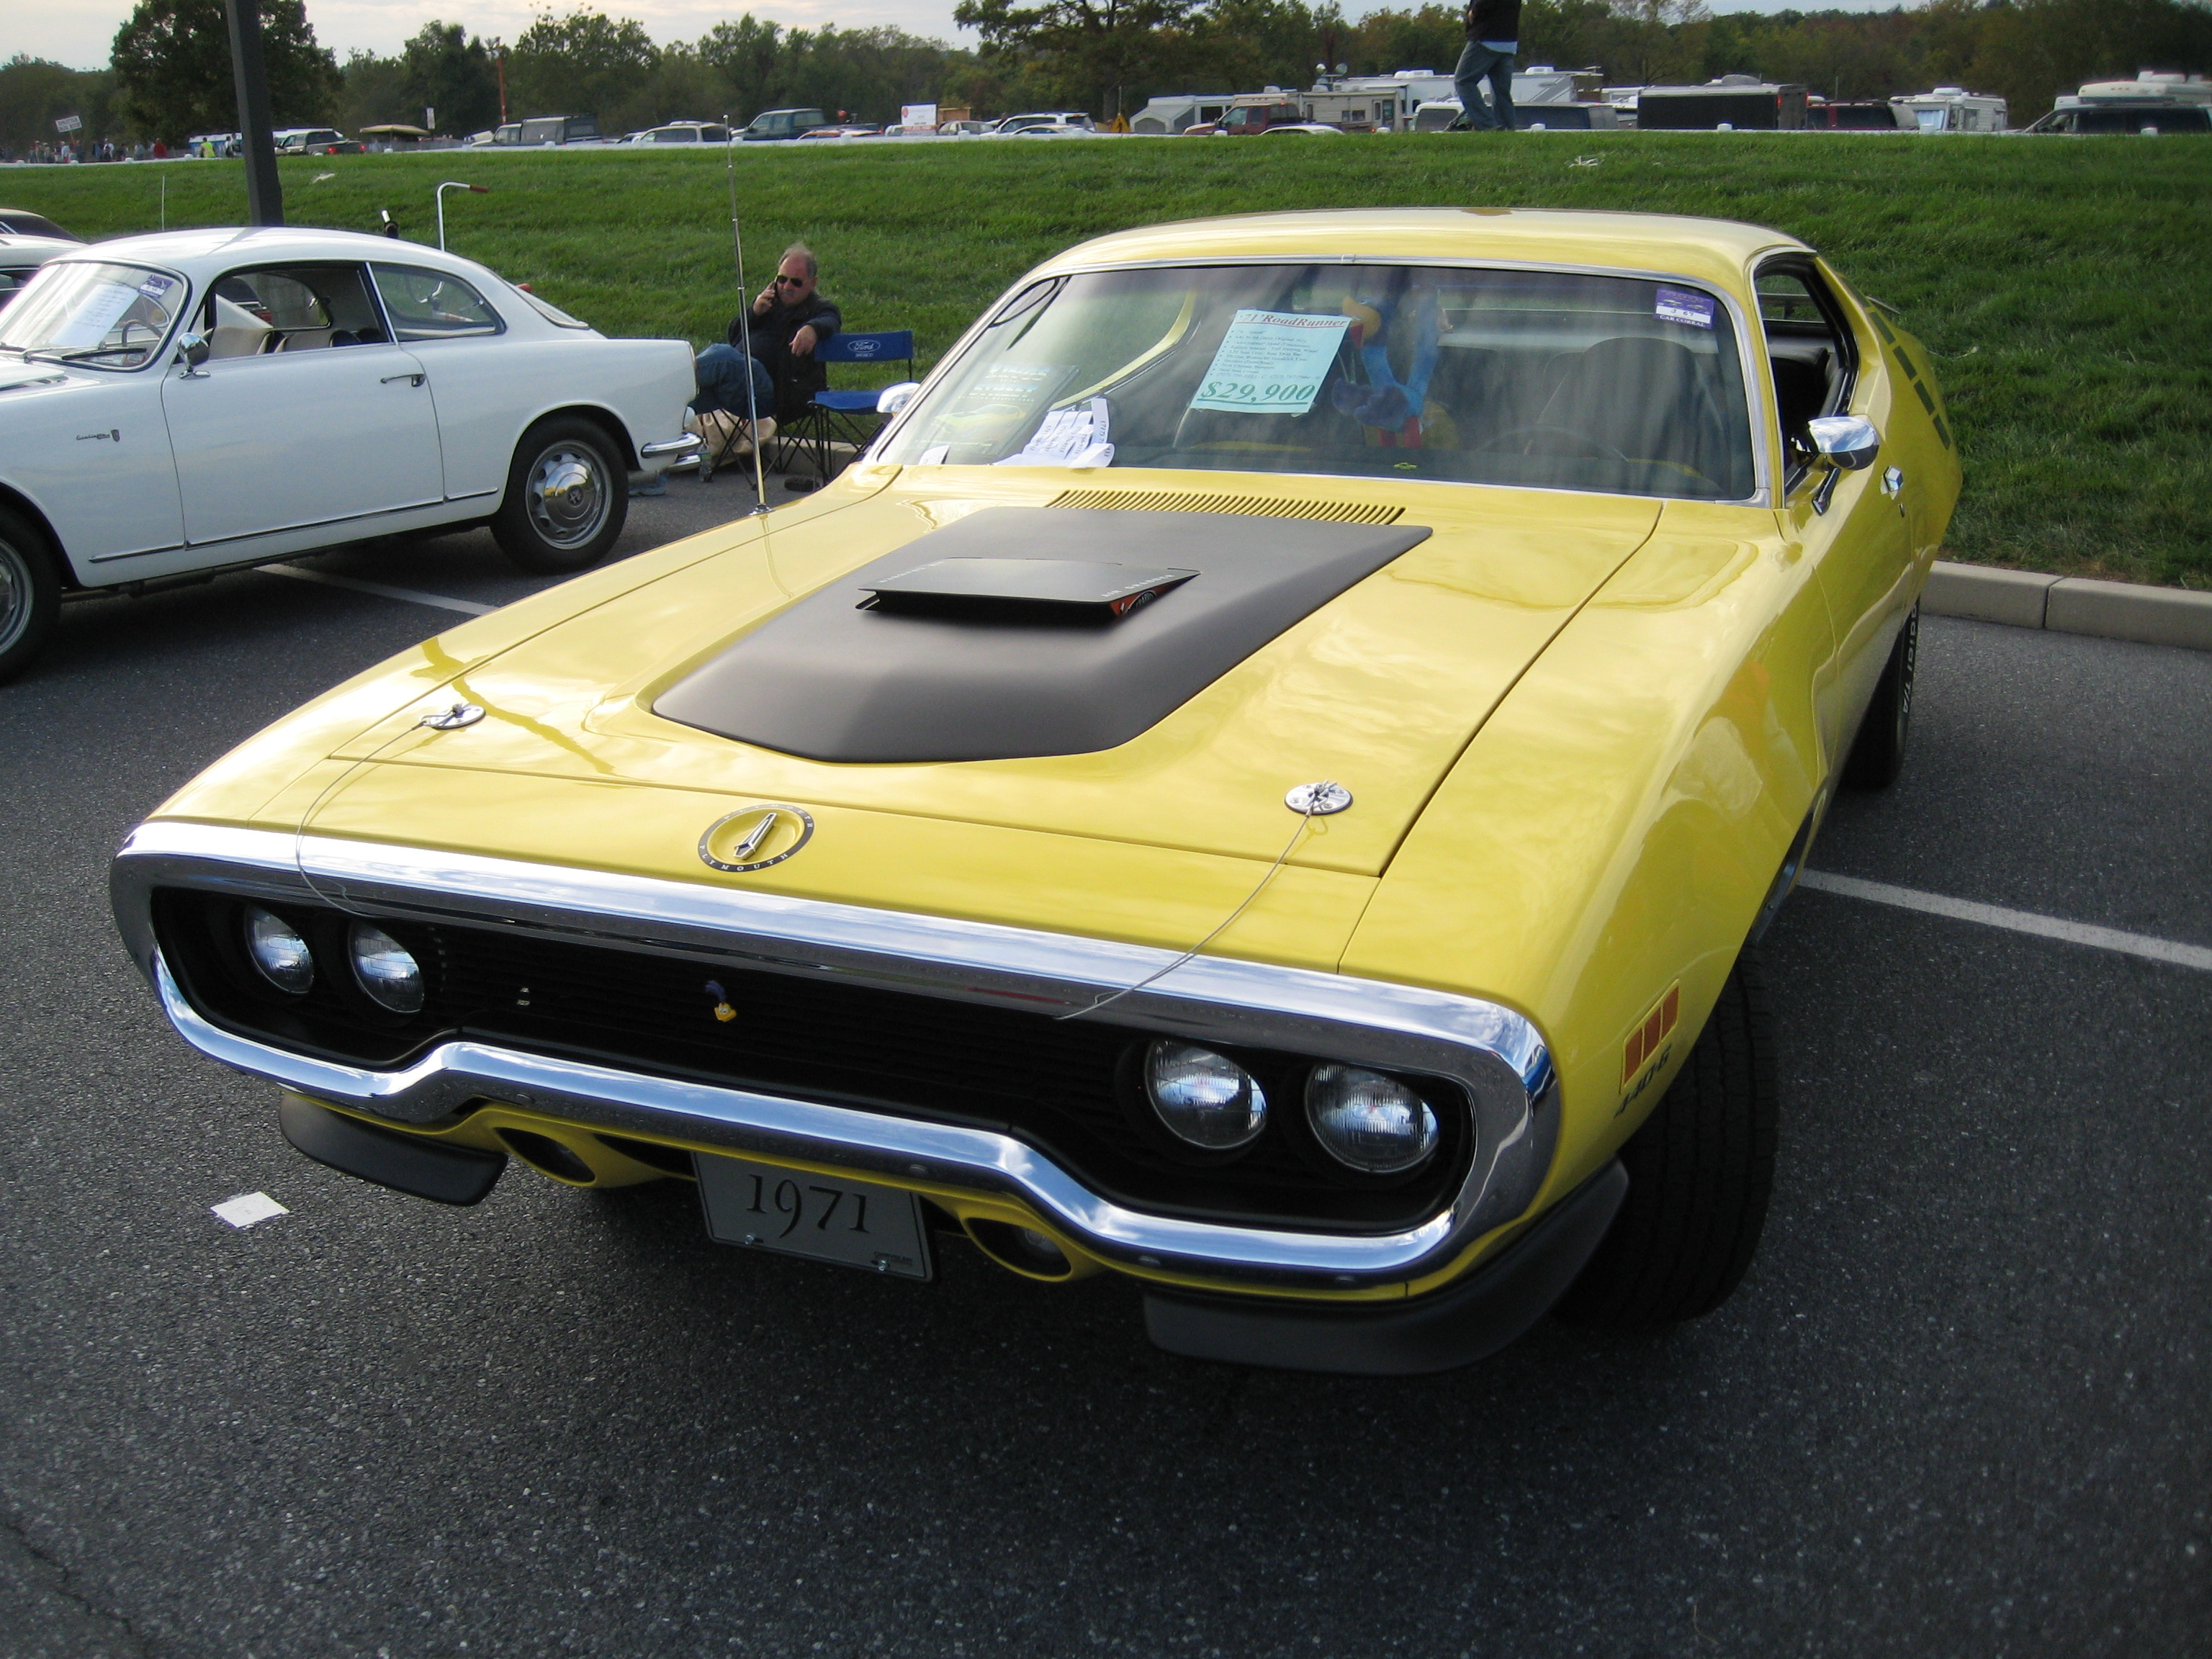 1971 Plymouth Road Runner #17